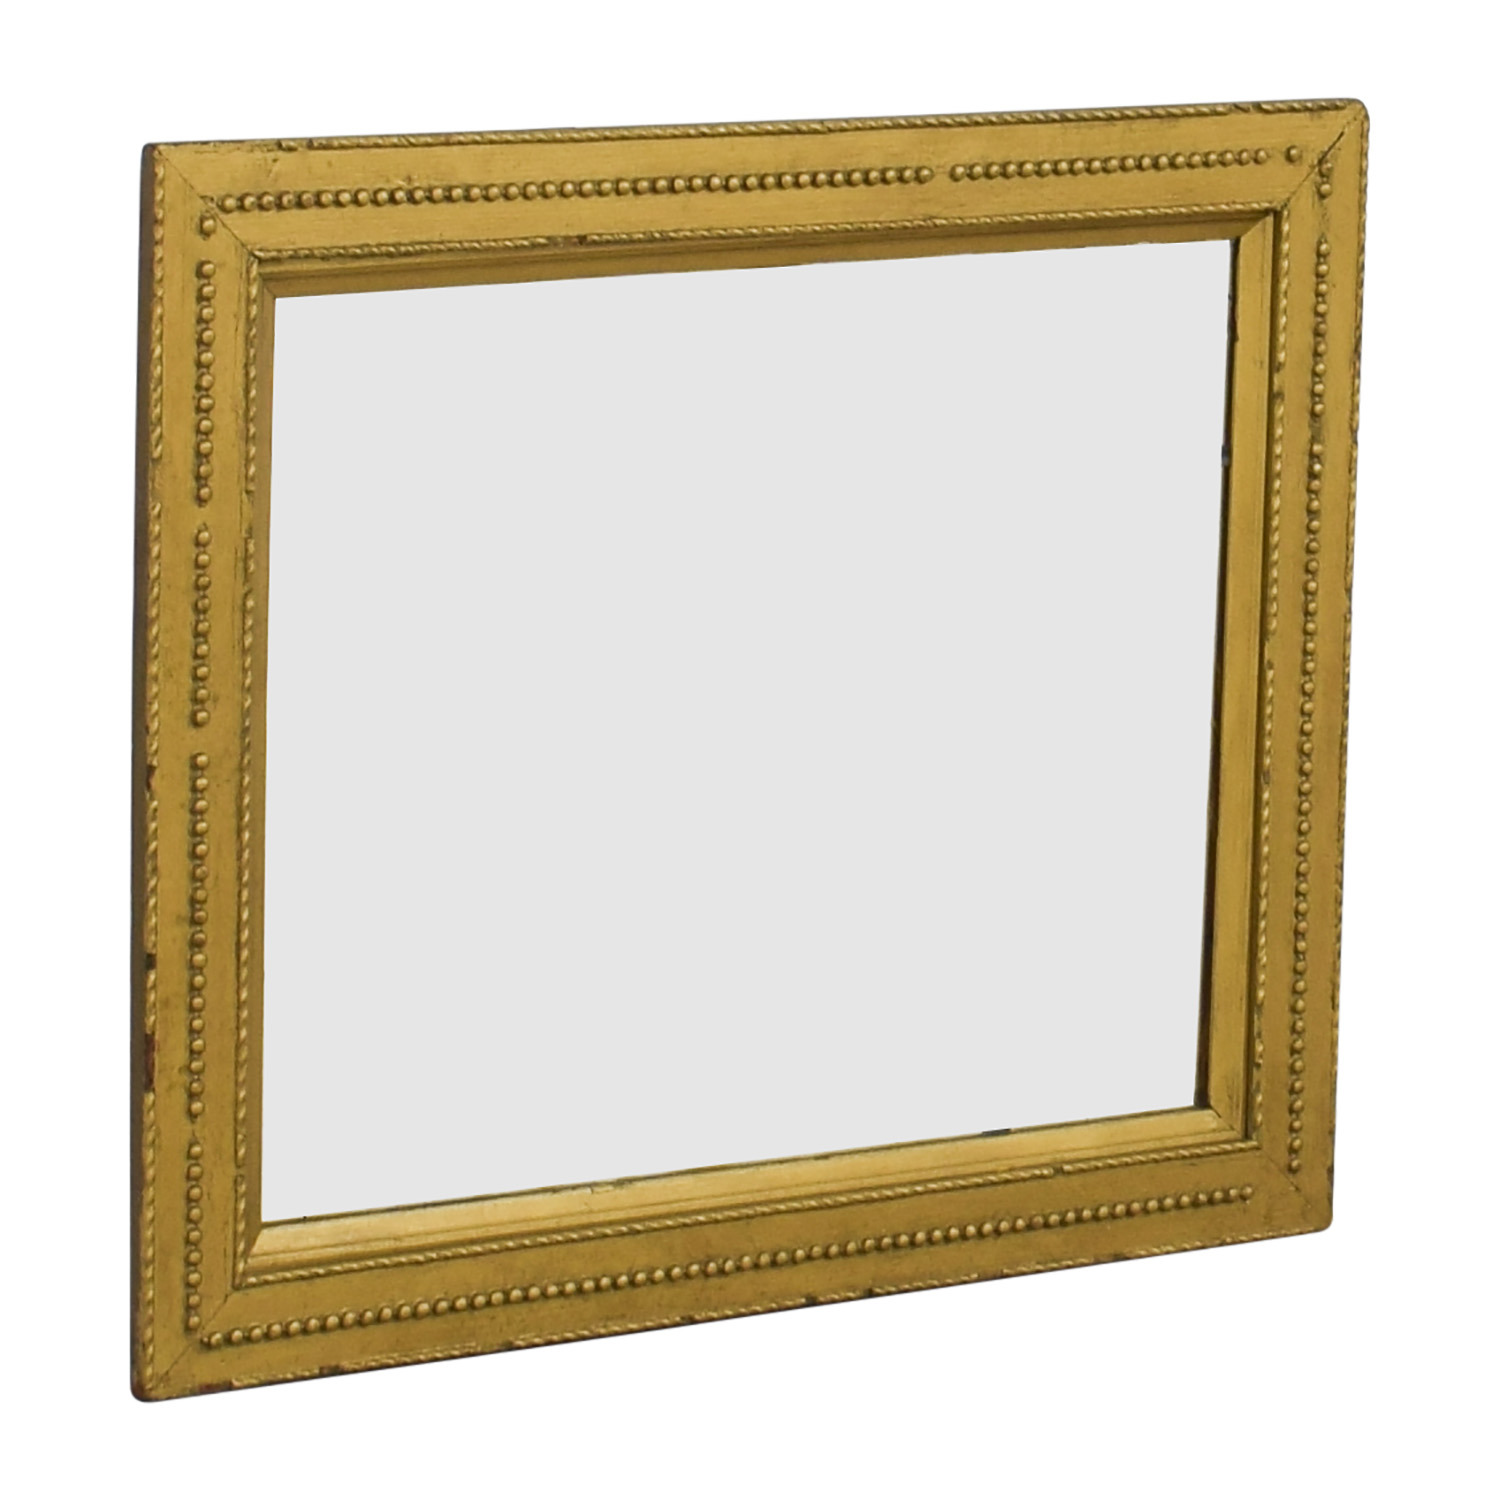 Rustic Gold Framed Mirror Gold